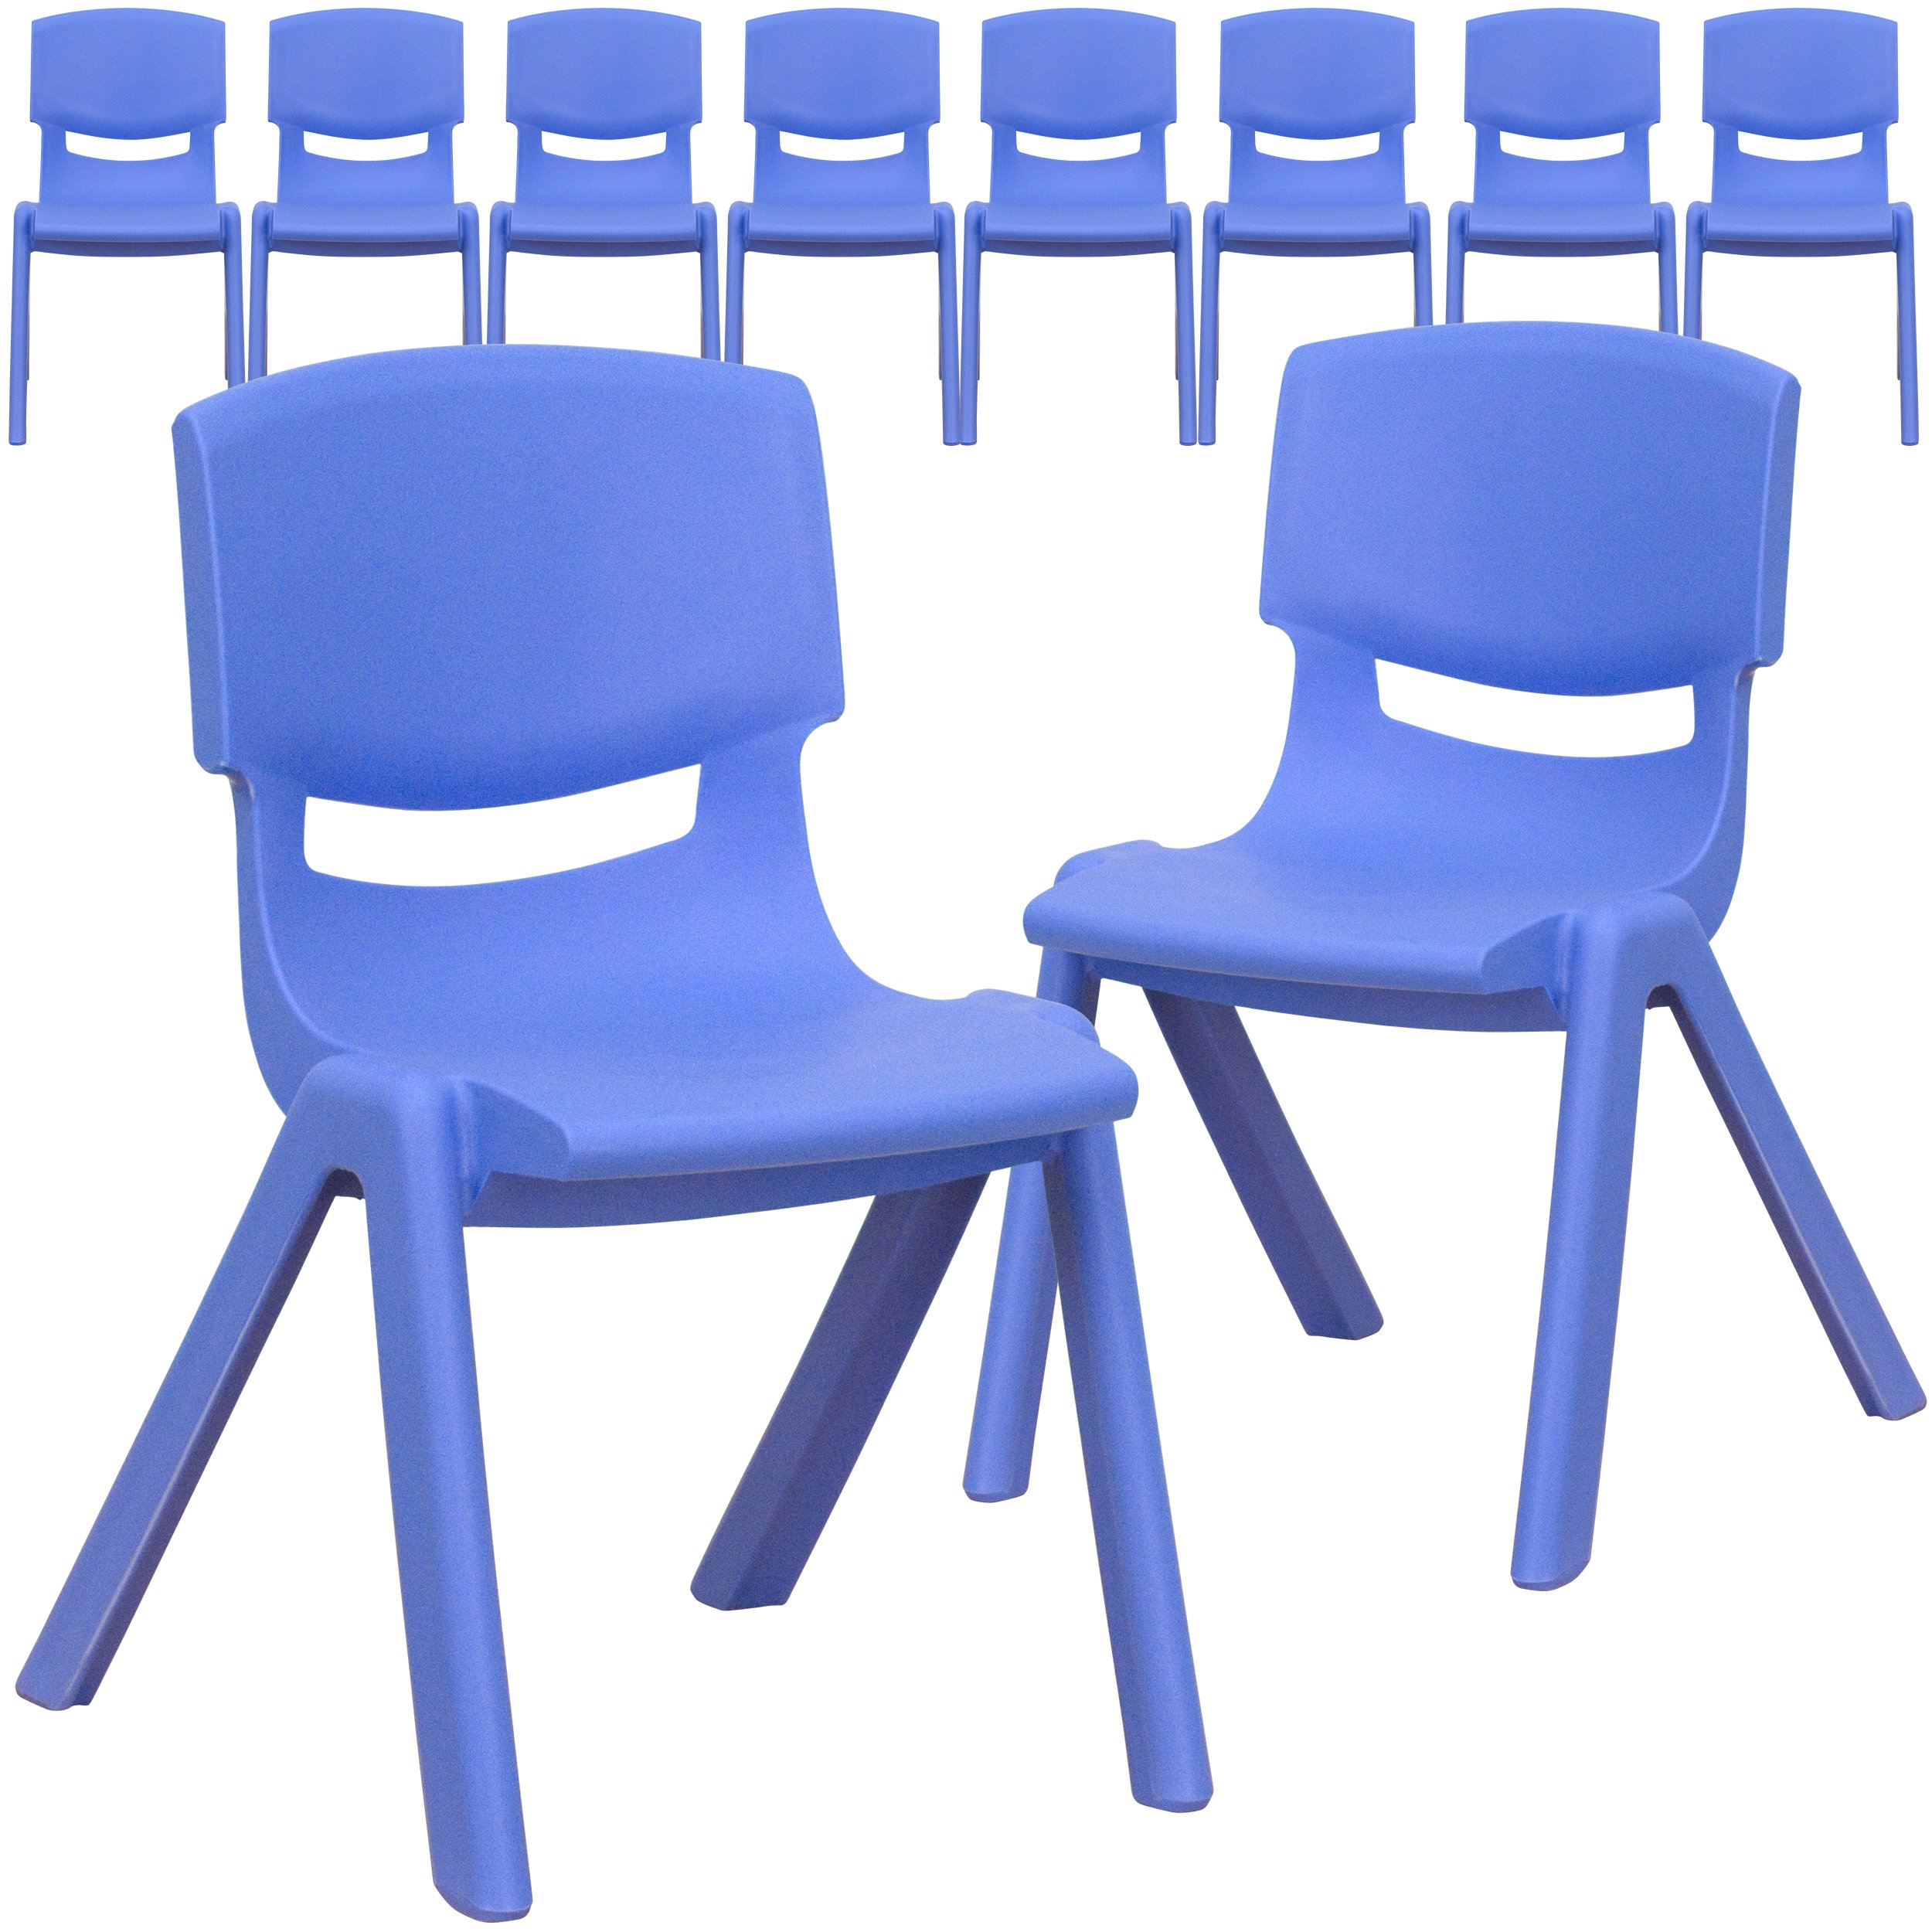 Flash Furniture 10 Pk. Blue Plastic Stackable School Chair with 12'' Seat Height by Flash Furniture